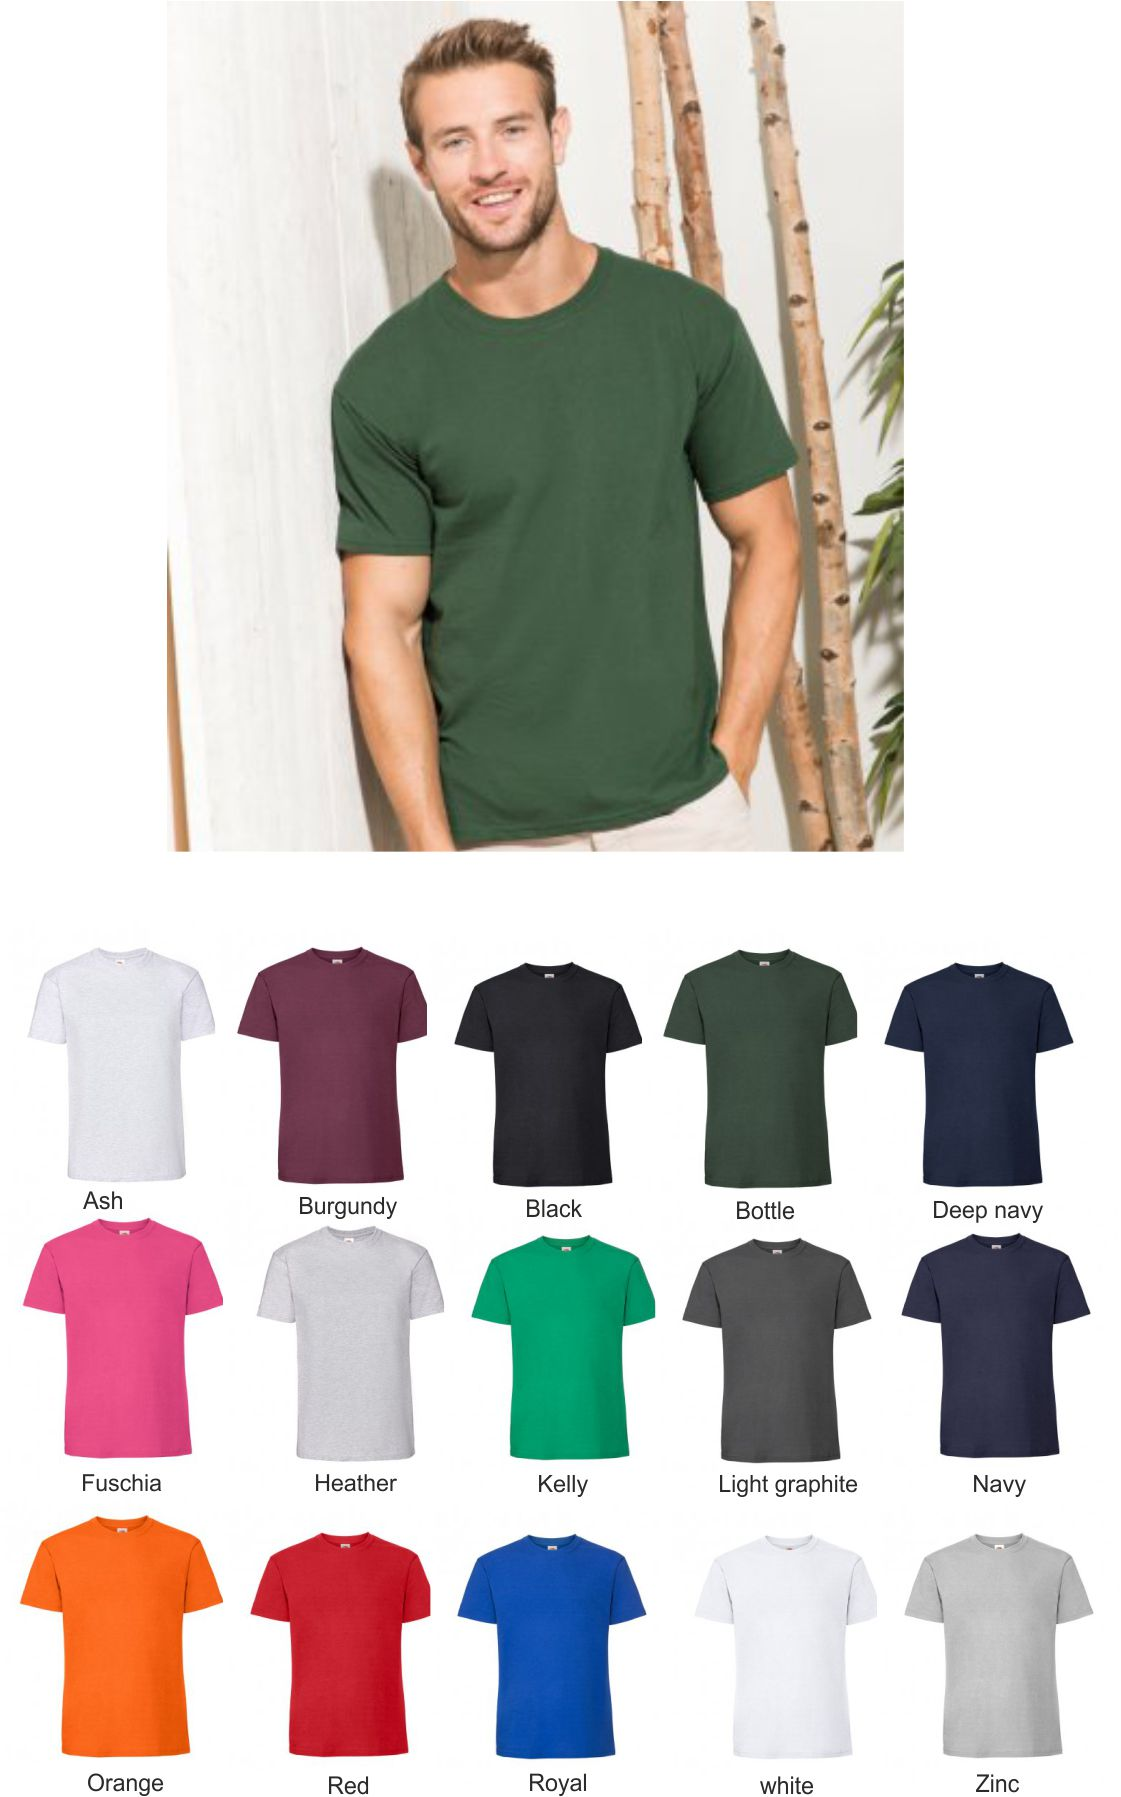 SS620 Fruit of the Loom Ringspun Premium T-Shirt